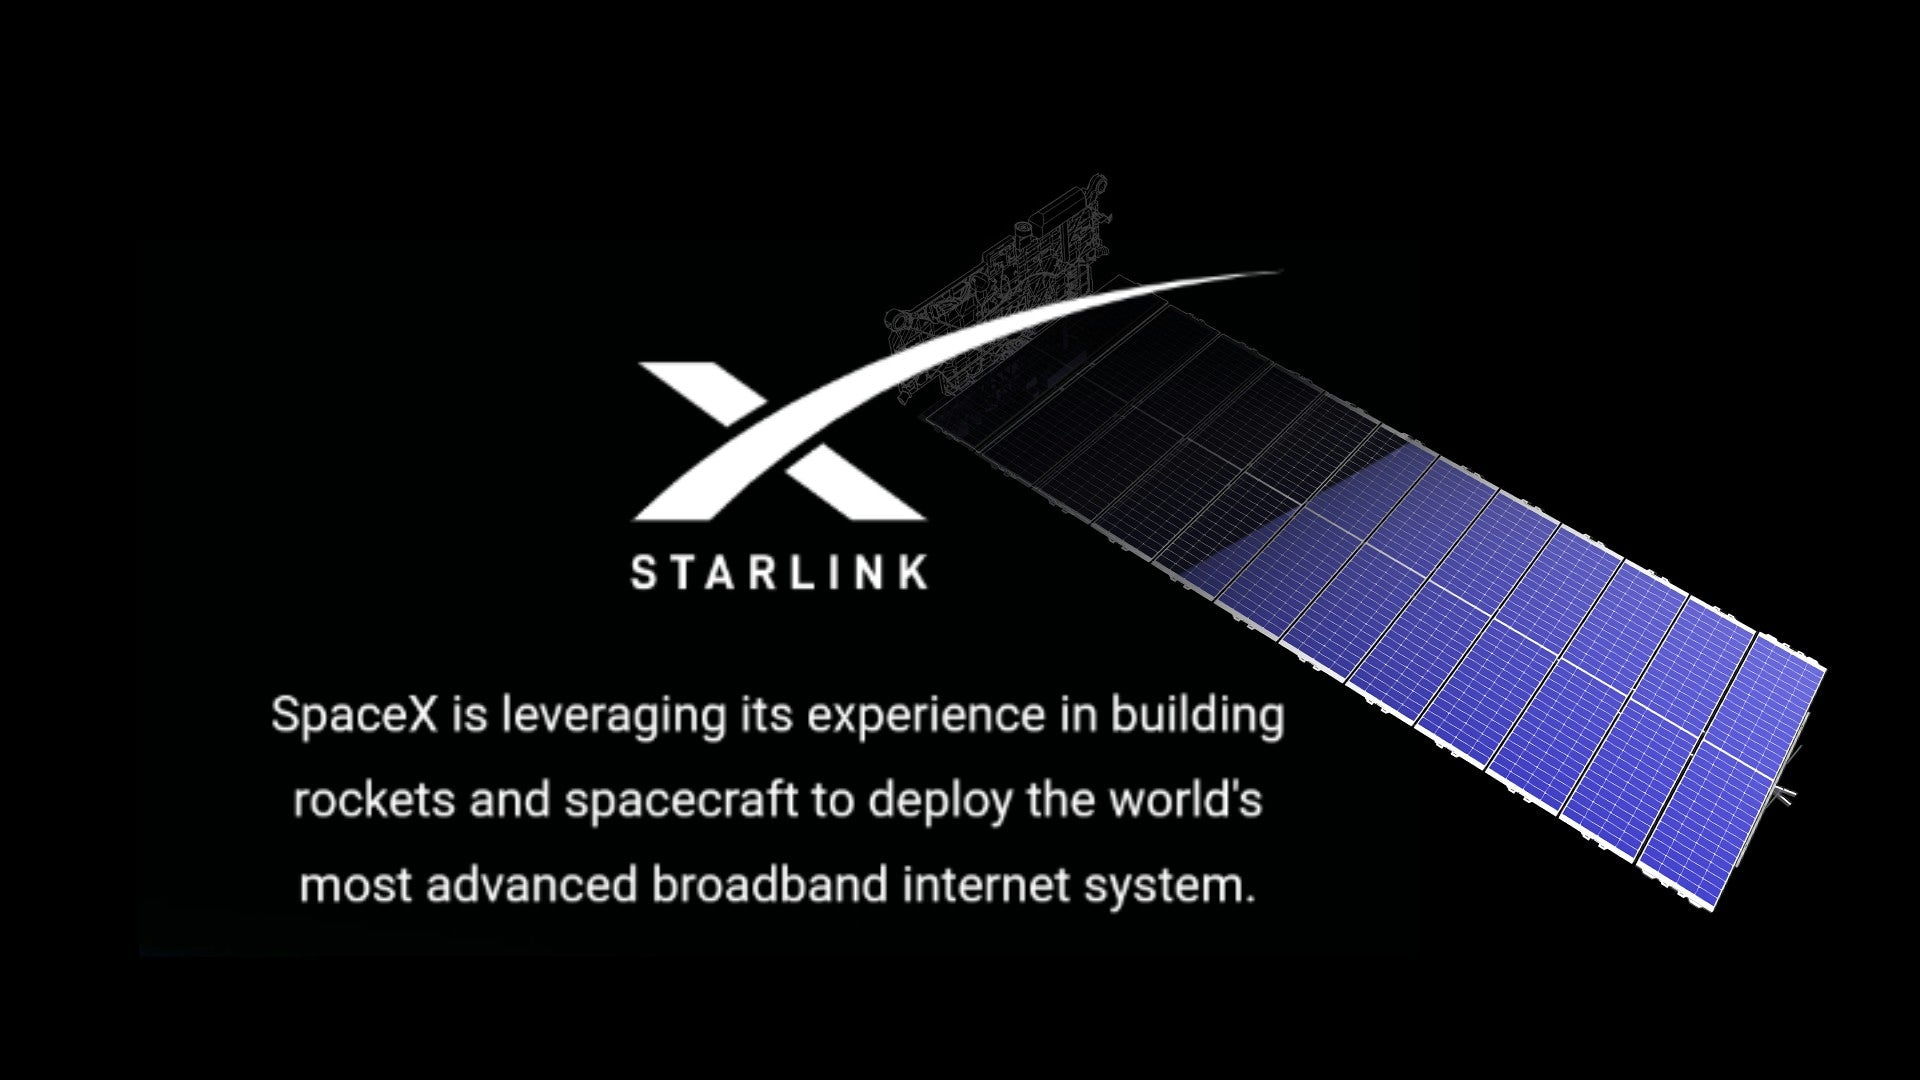 SpaceX's Starlink broadband internet network will benefit rural areas